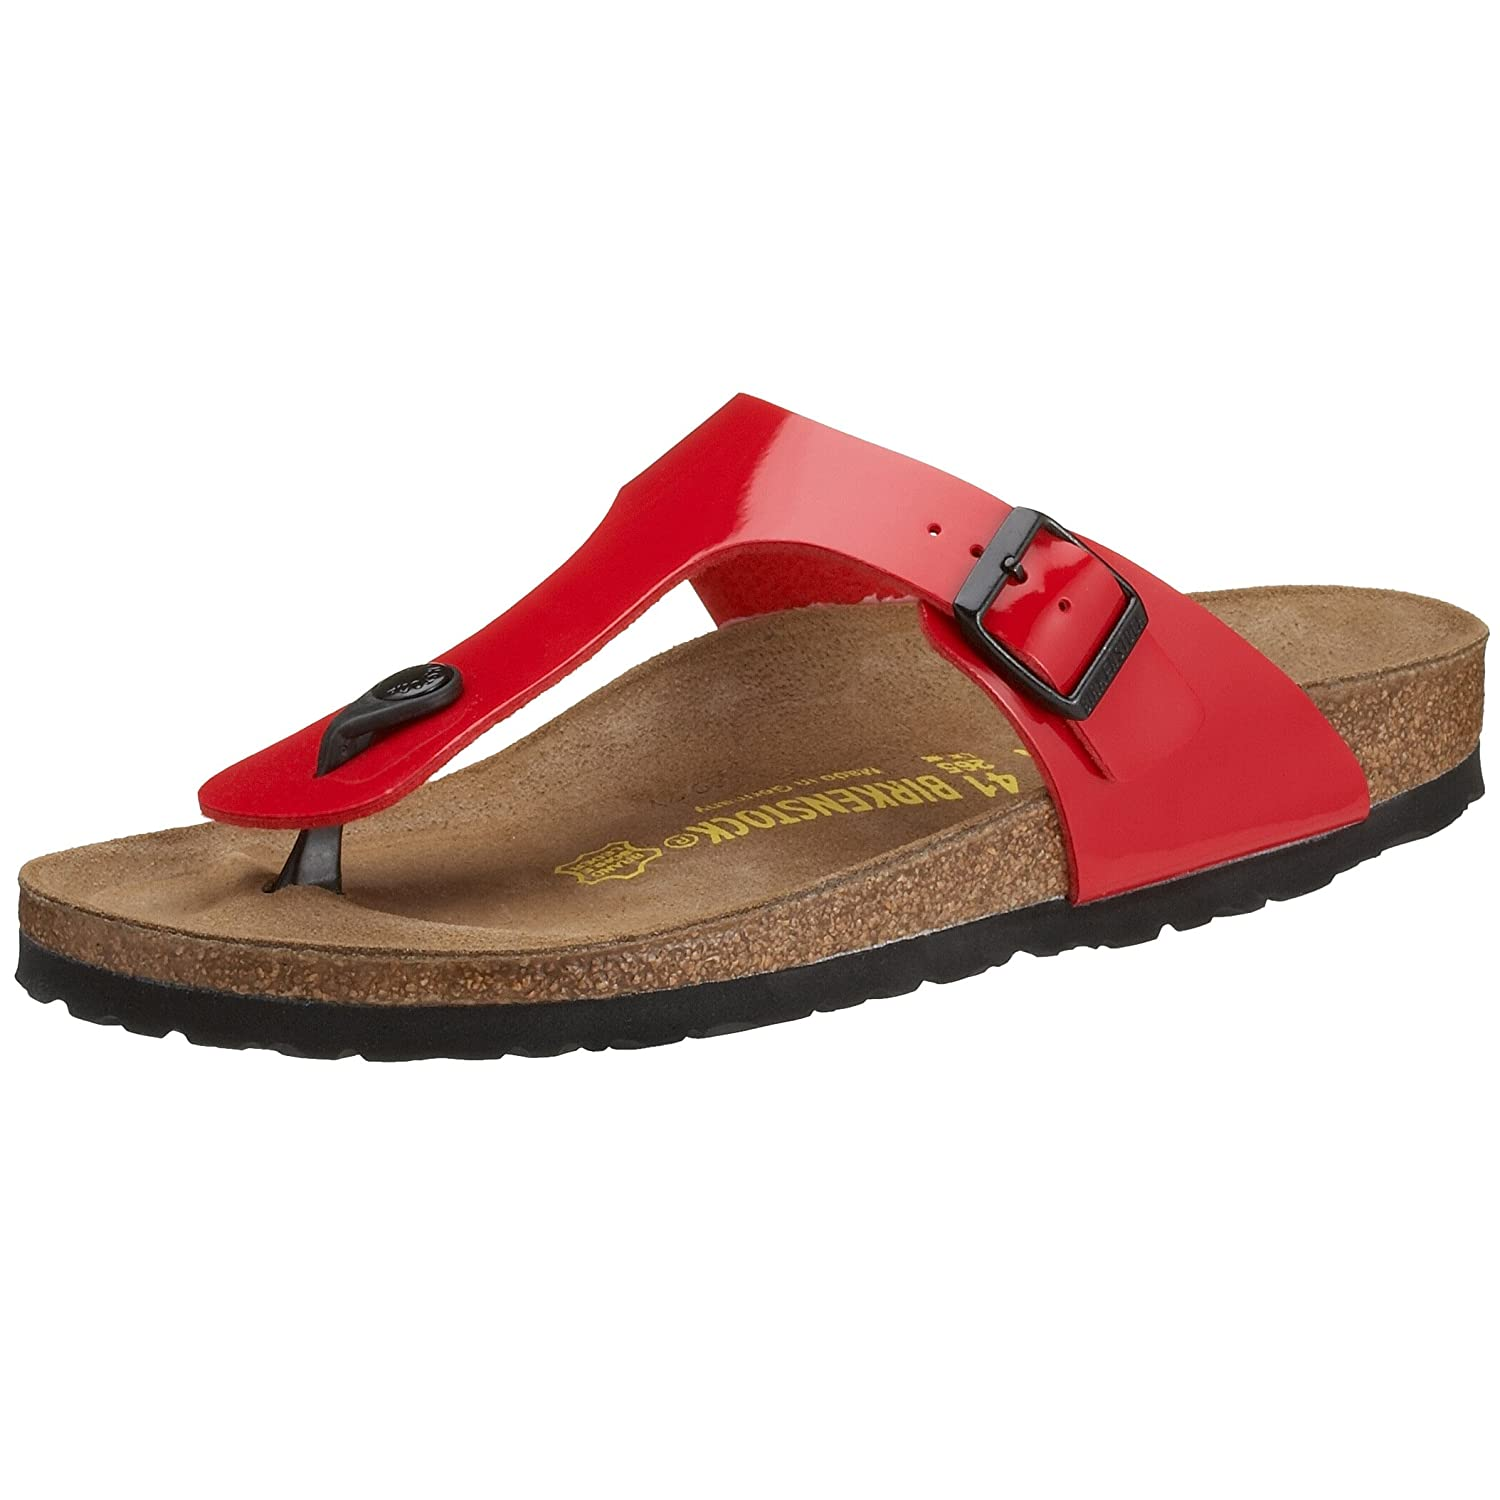 TALLA 37 EU. Birkenstock Gizeh Slipper Junior